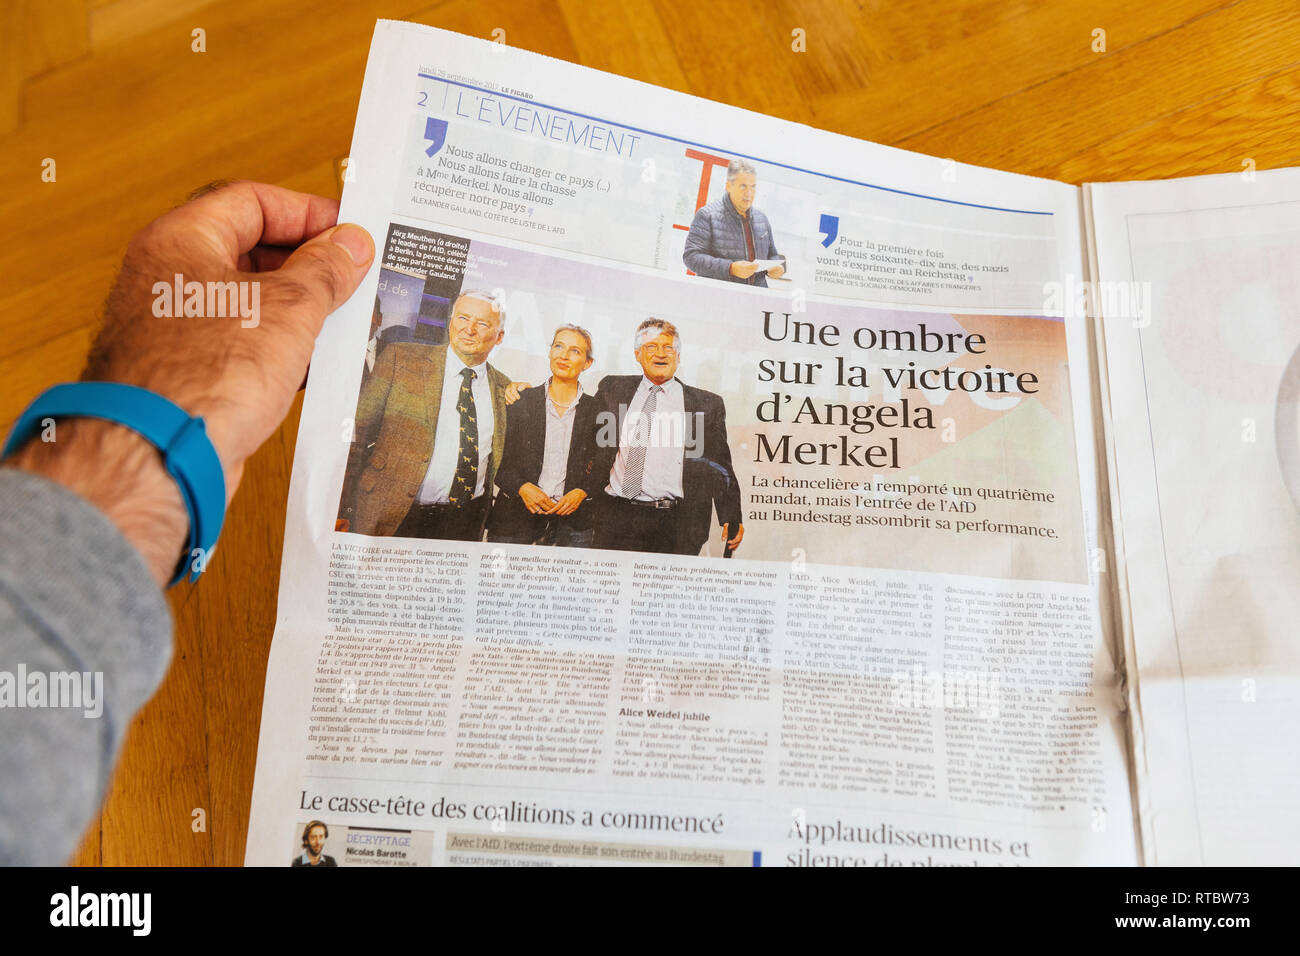 PARIS, FRANCE - SEP 25, 2017: Man reading French Le Figaro with Jorg Meuthen, Alice Weldel, Alexander Gauland photos from Alternative fur Deutschland political party newspaper election Germany  - Stock Image